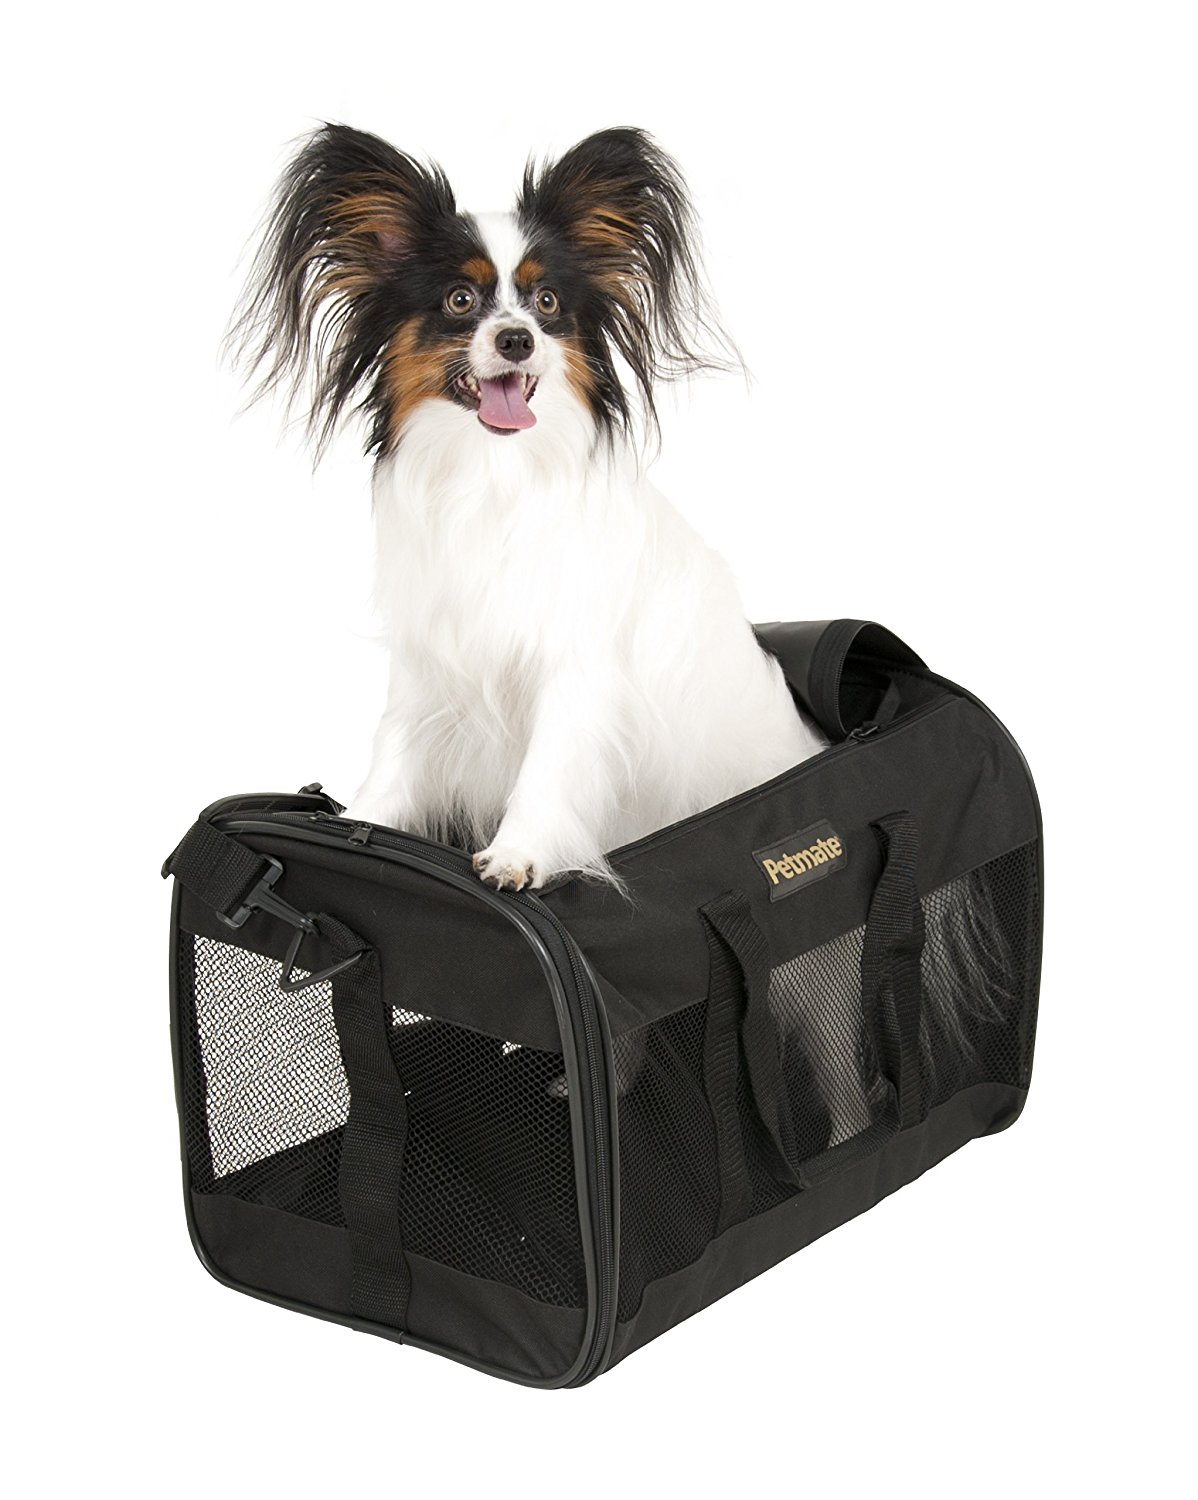 Petmate Soft-Sided Kennel Cab Pet Carrier